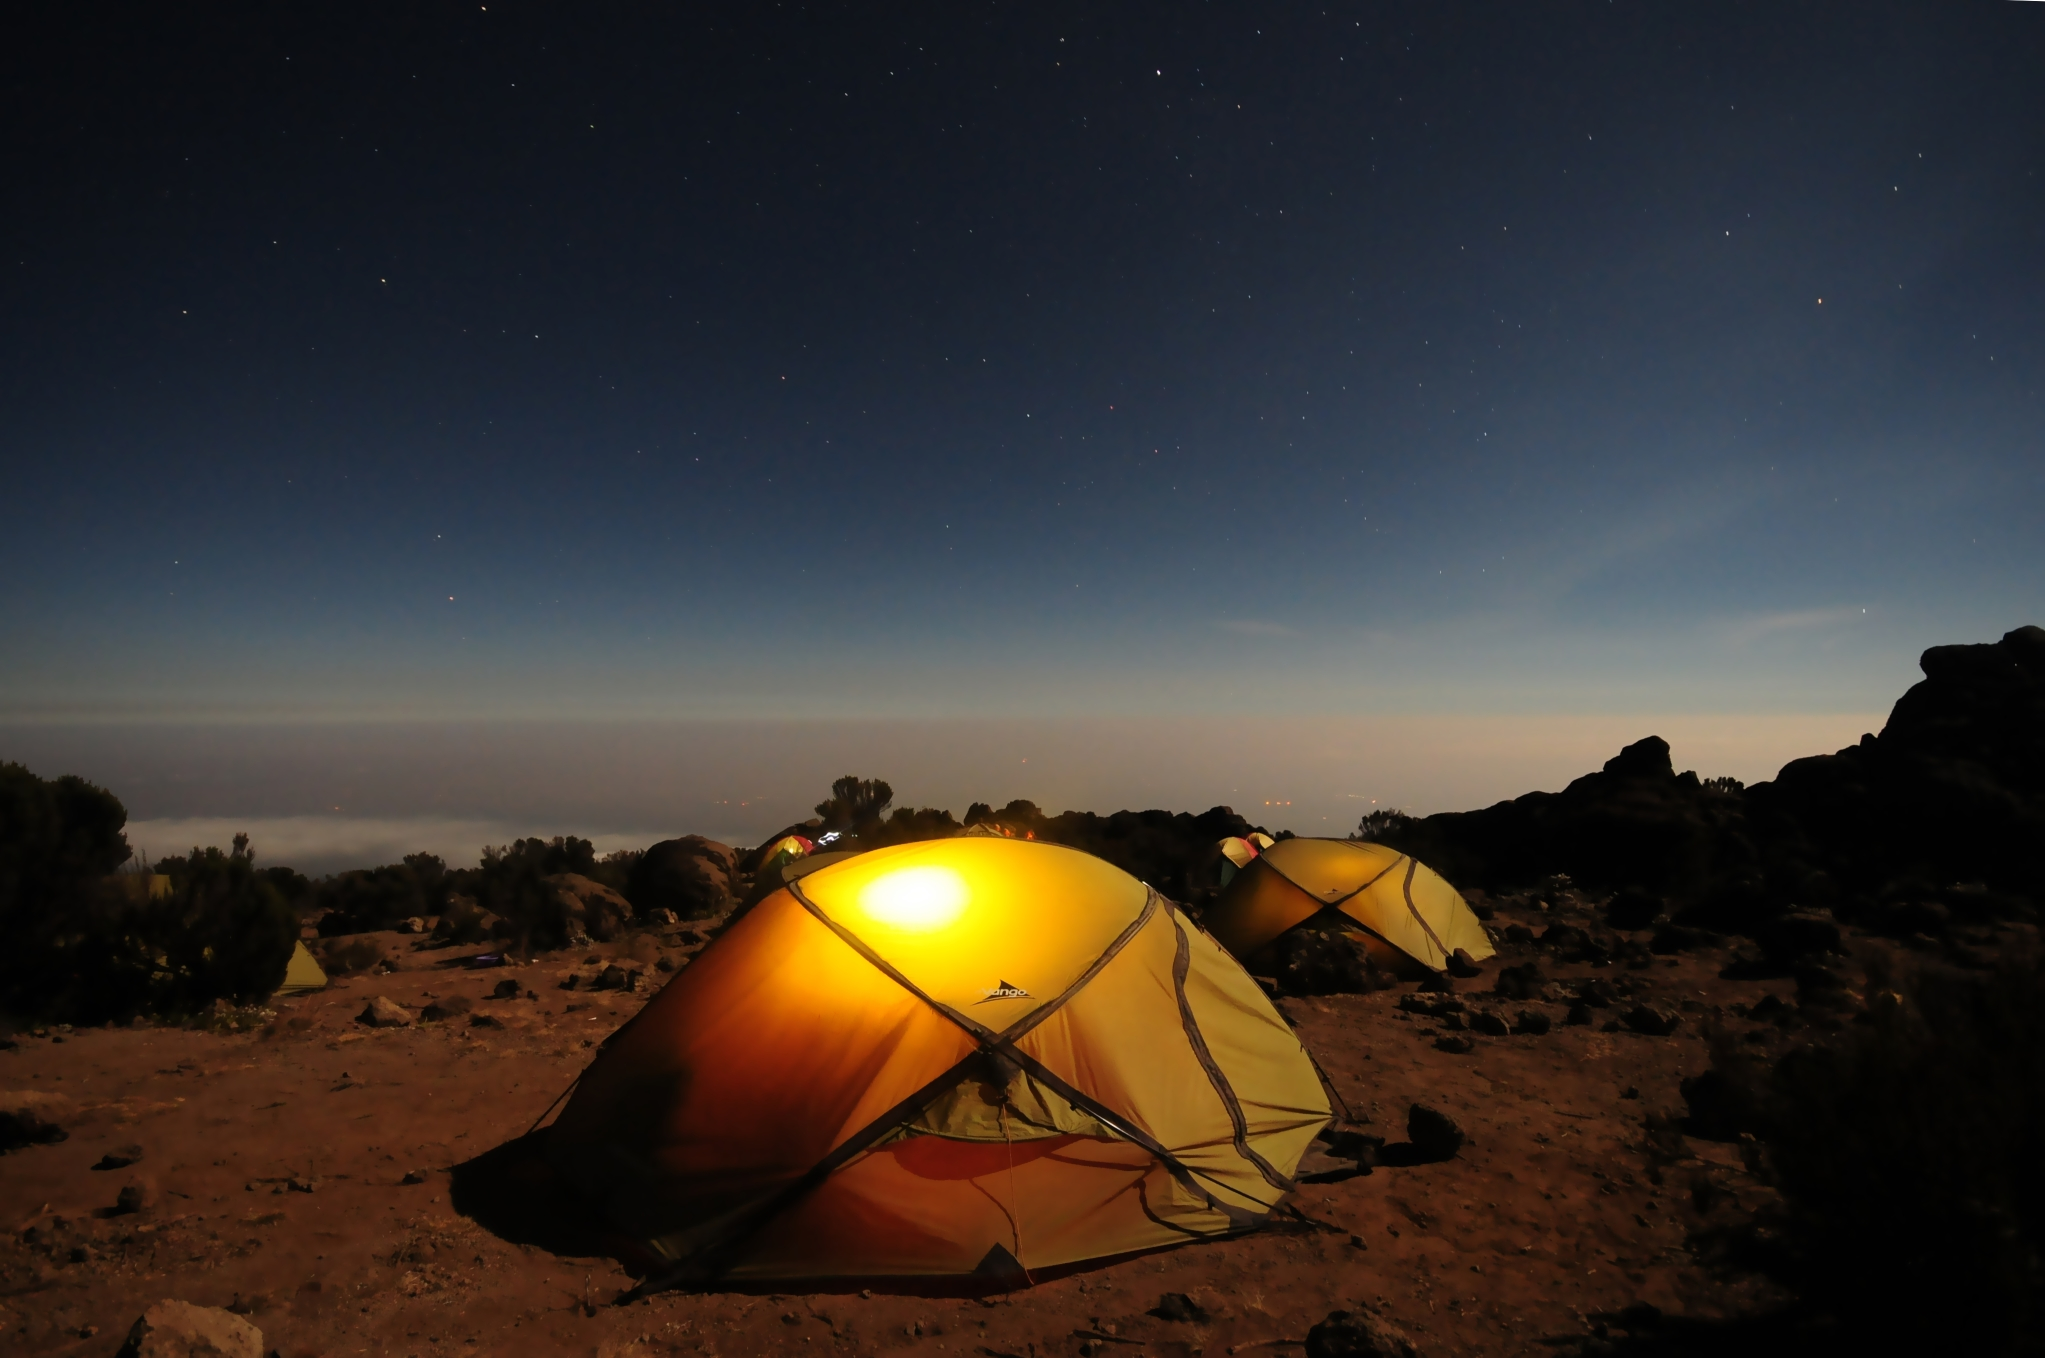 A couple of tents with a nice view of the night sky